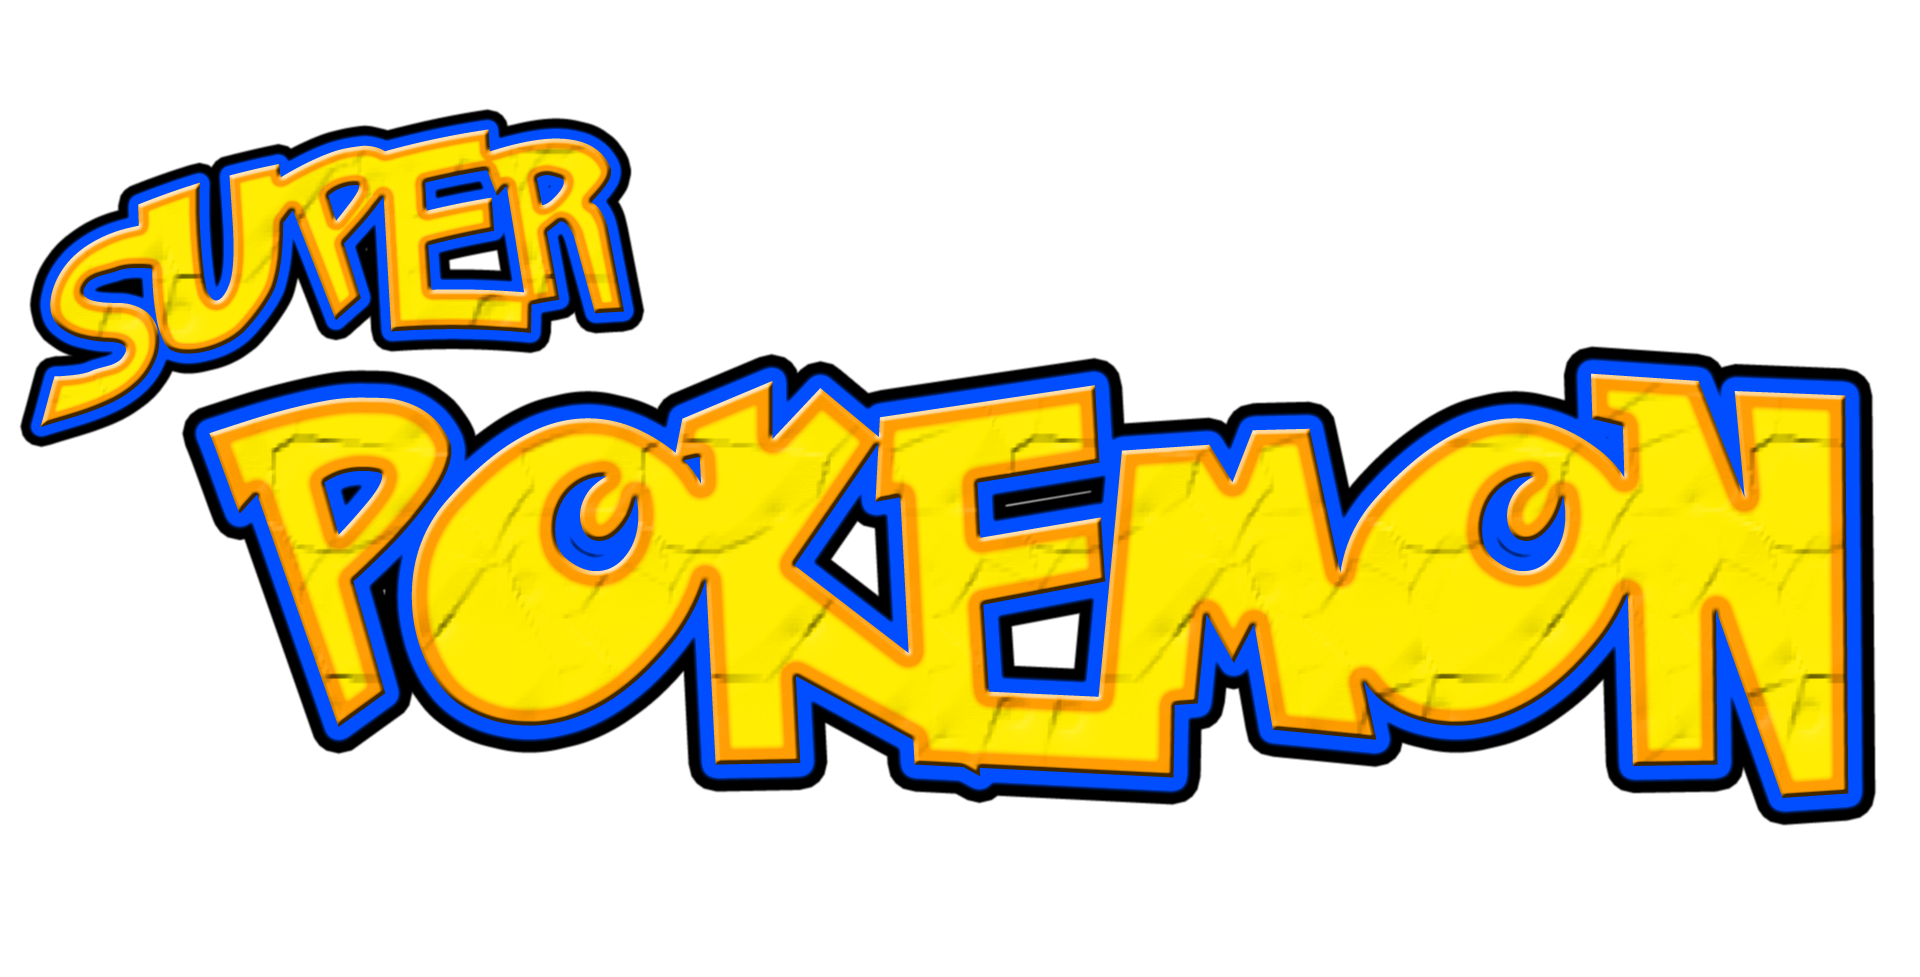 Super pokemon logo png #1425 - Free Transparent PNG Logos